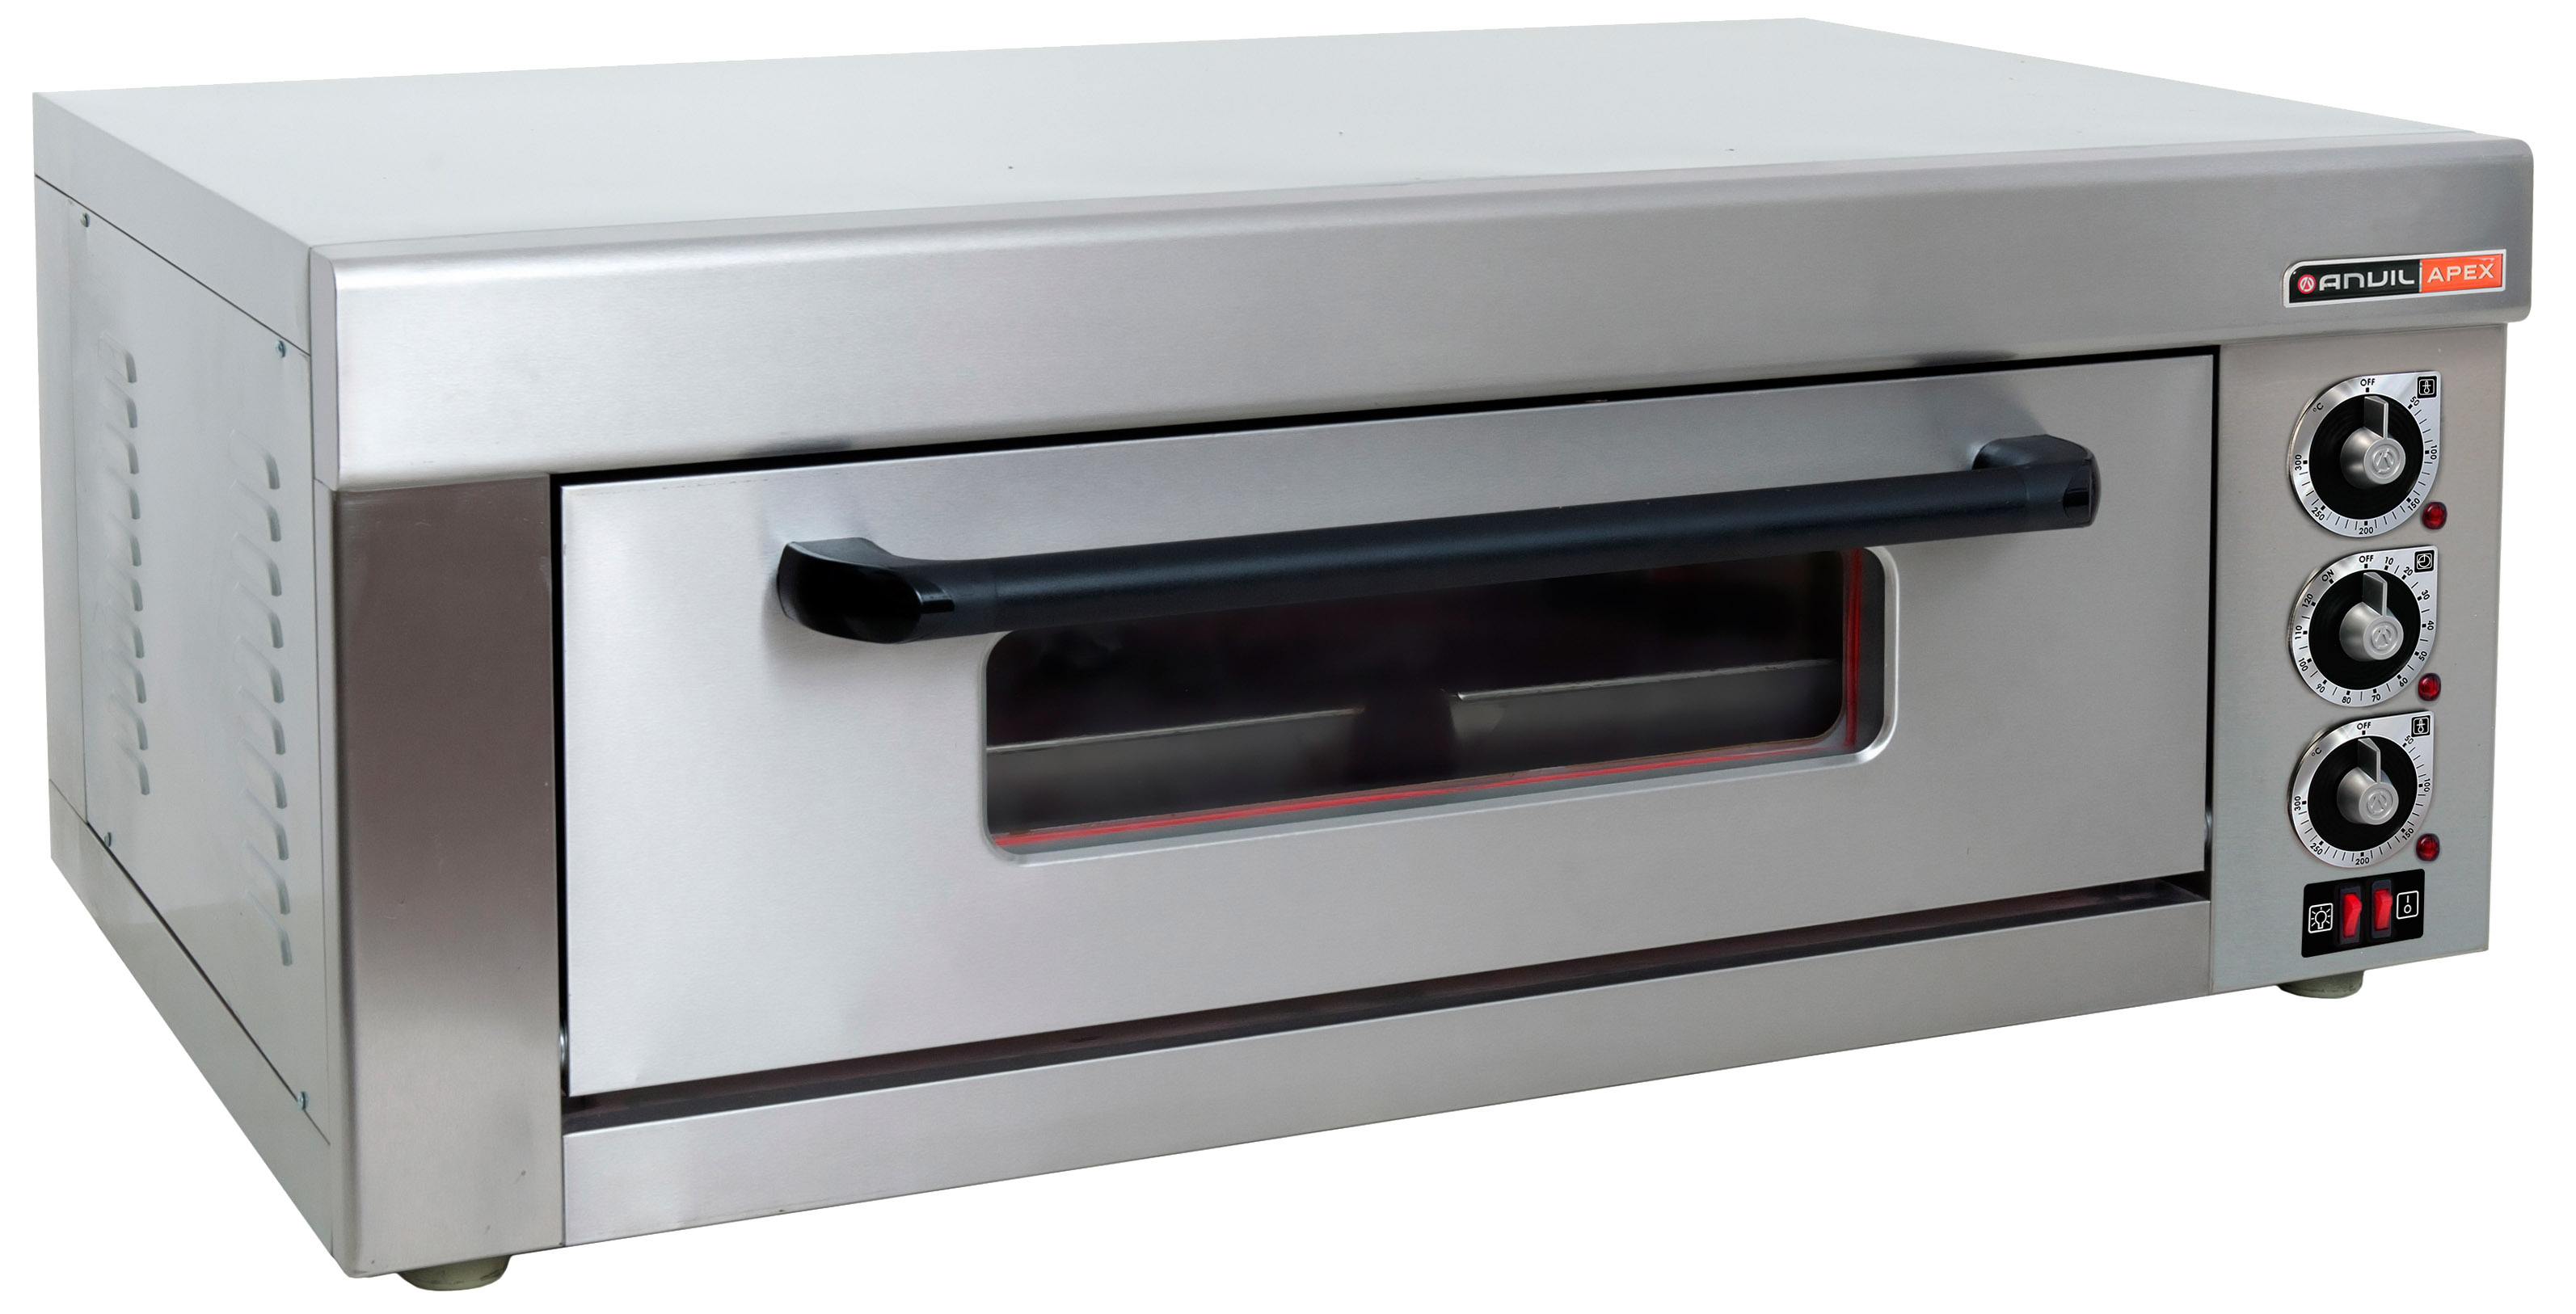 DECK OVEN ANVIL - 2 TRAY - SINGLE DECK (can be wired as 1 or 3 PHASE by a certified electrician)